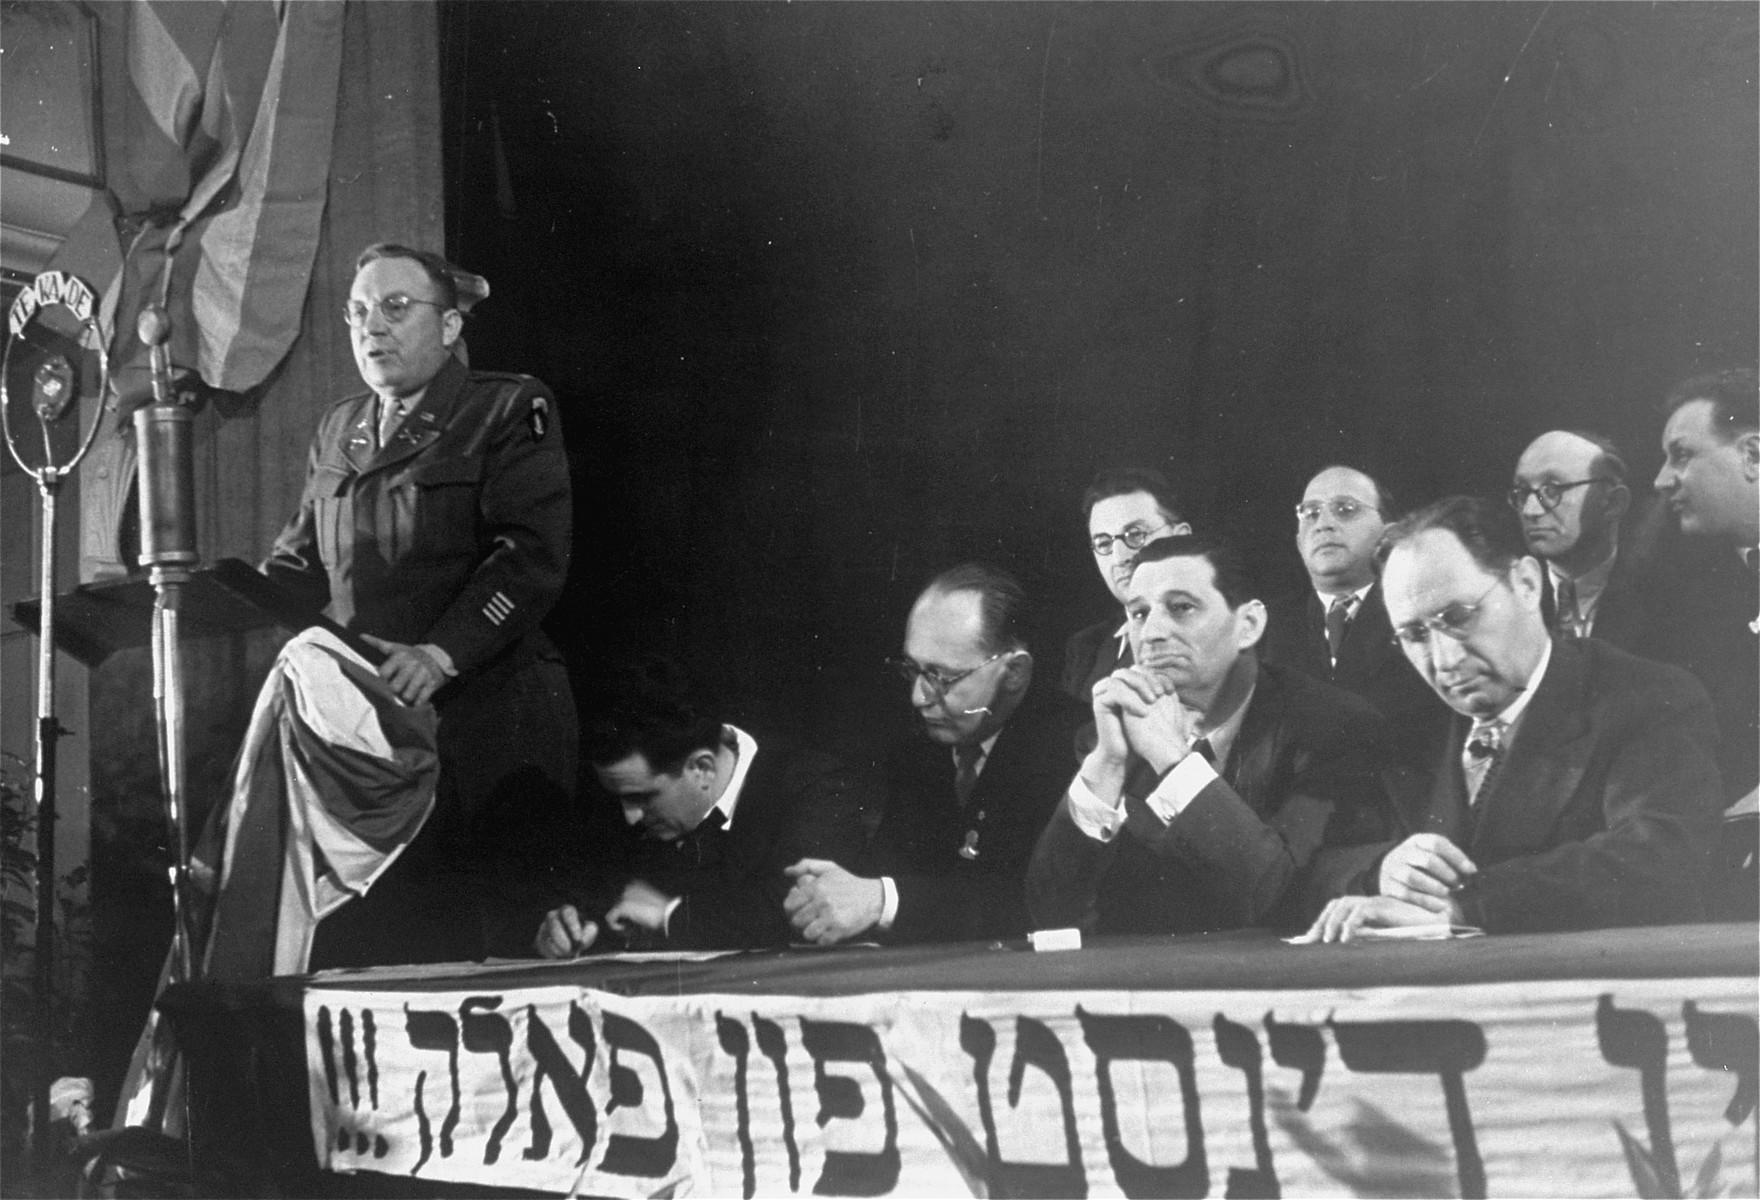 Honored guests seated on the dais listen to a speech at the Third Conference of Liberated Jews in the US Zone of Germany.  Joseph Schwartz is pictured in the front row, second from right.